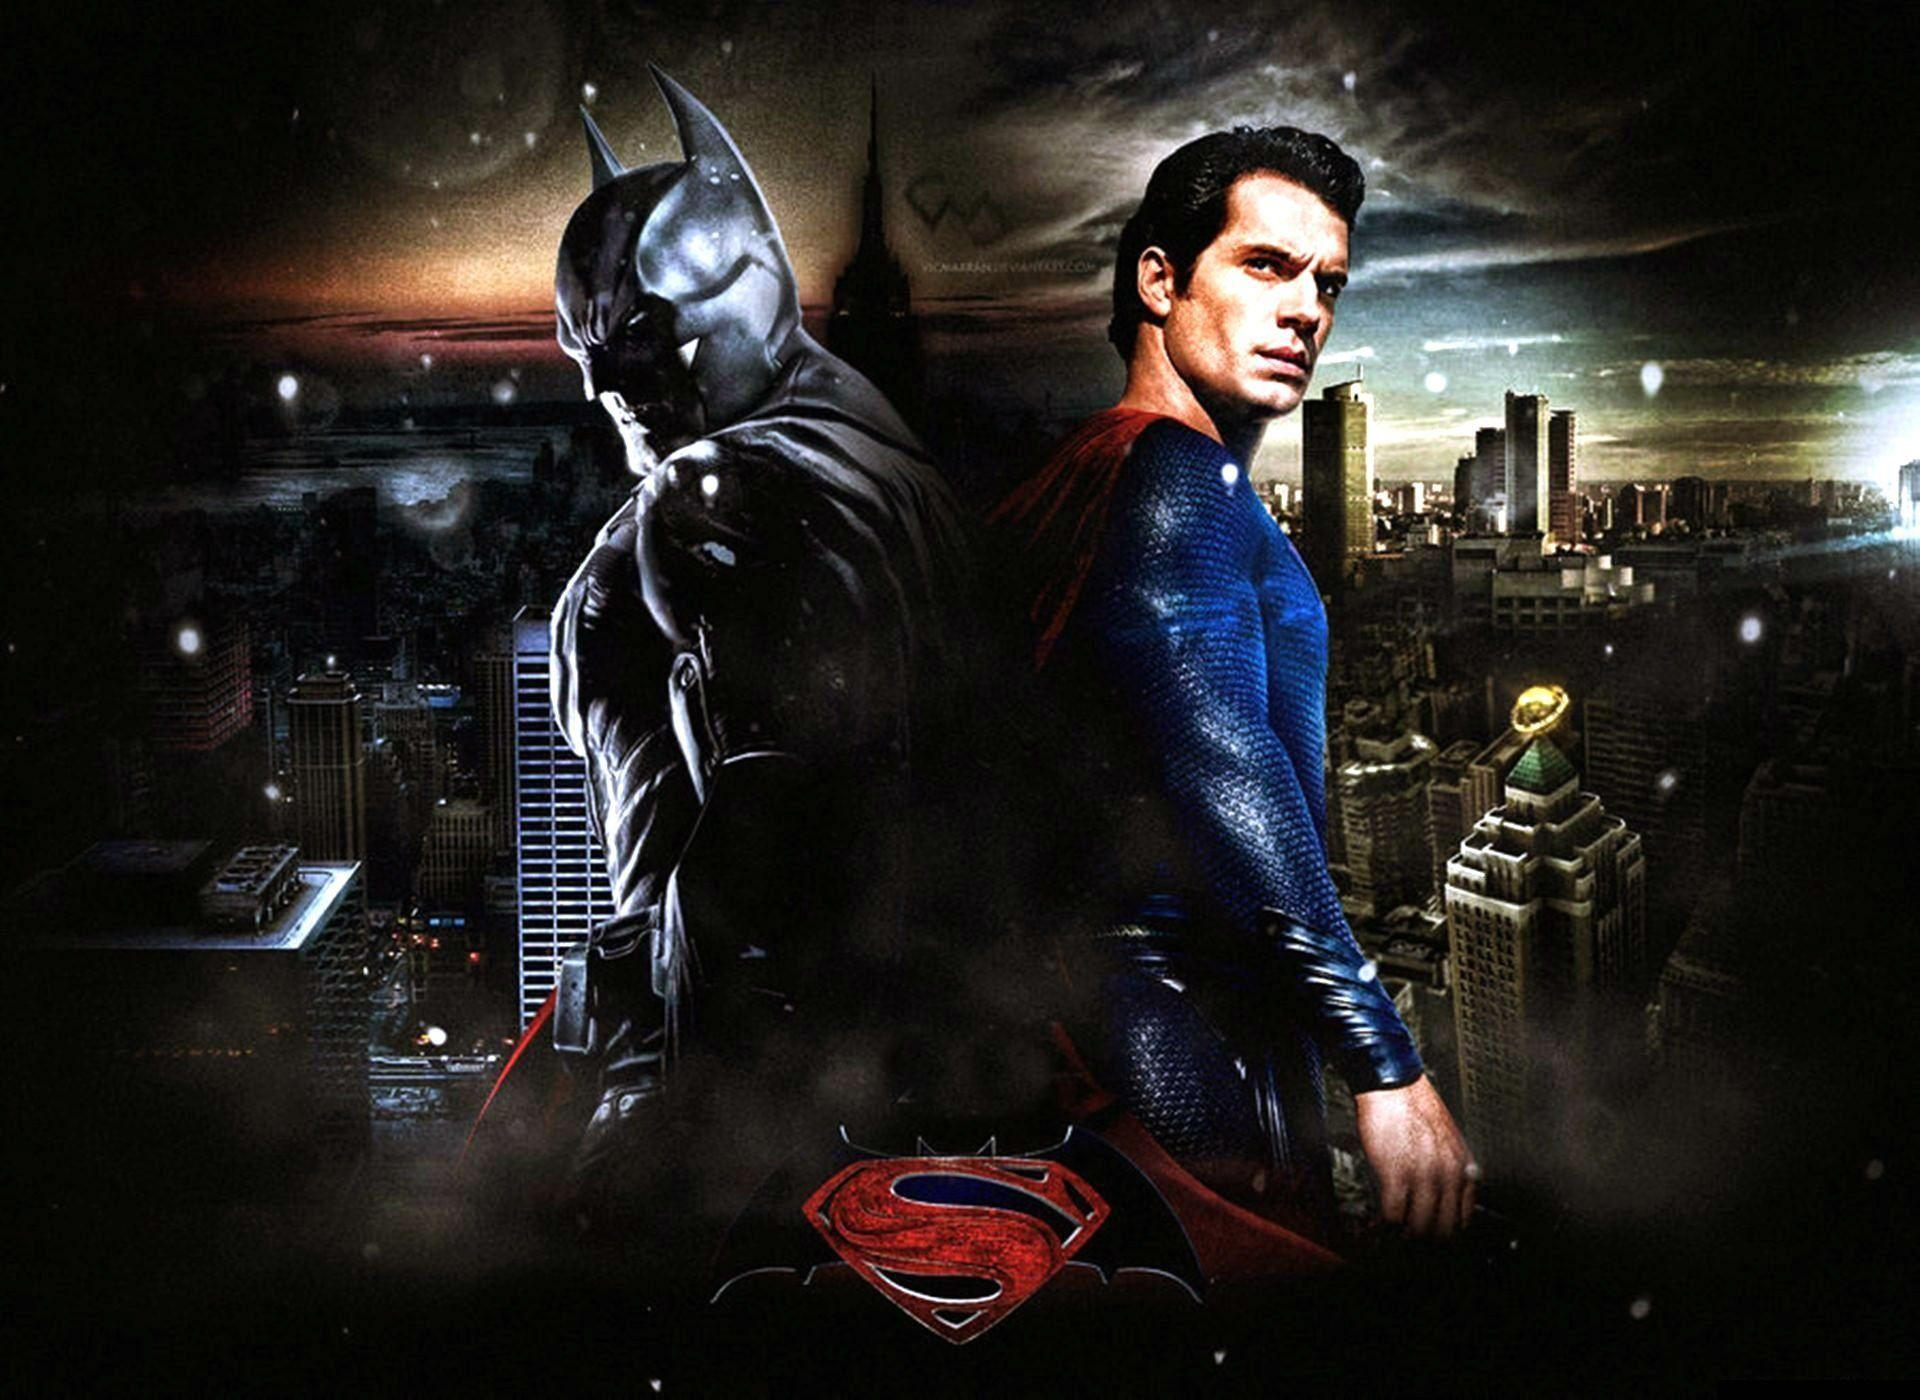 Superman Vs Batman Kinox